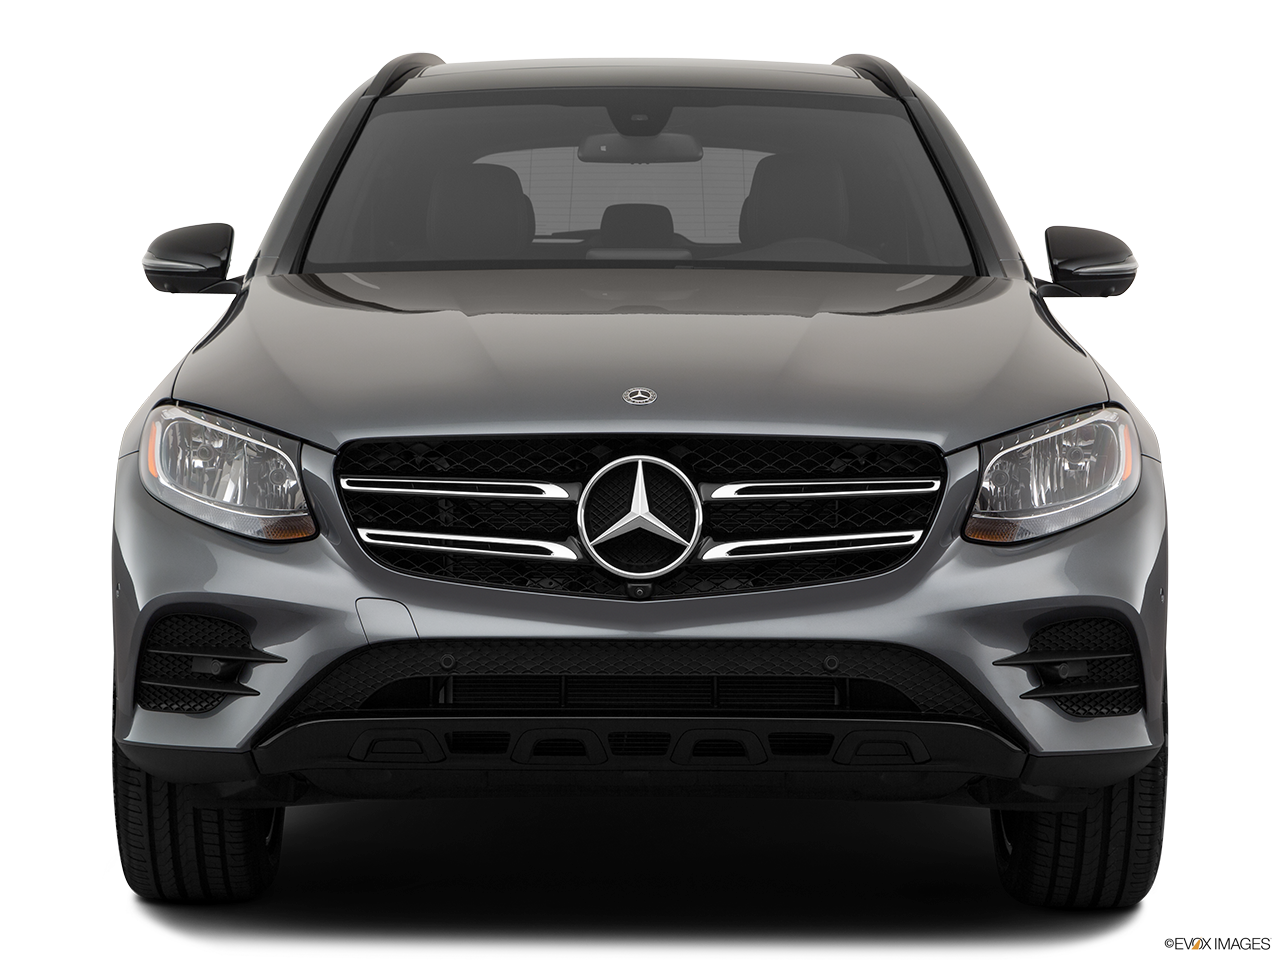 Front view of the Mercedes-Benz GLC350e